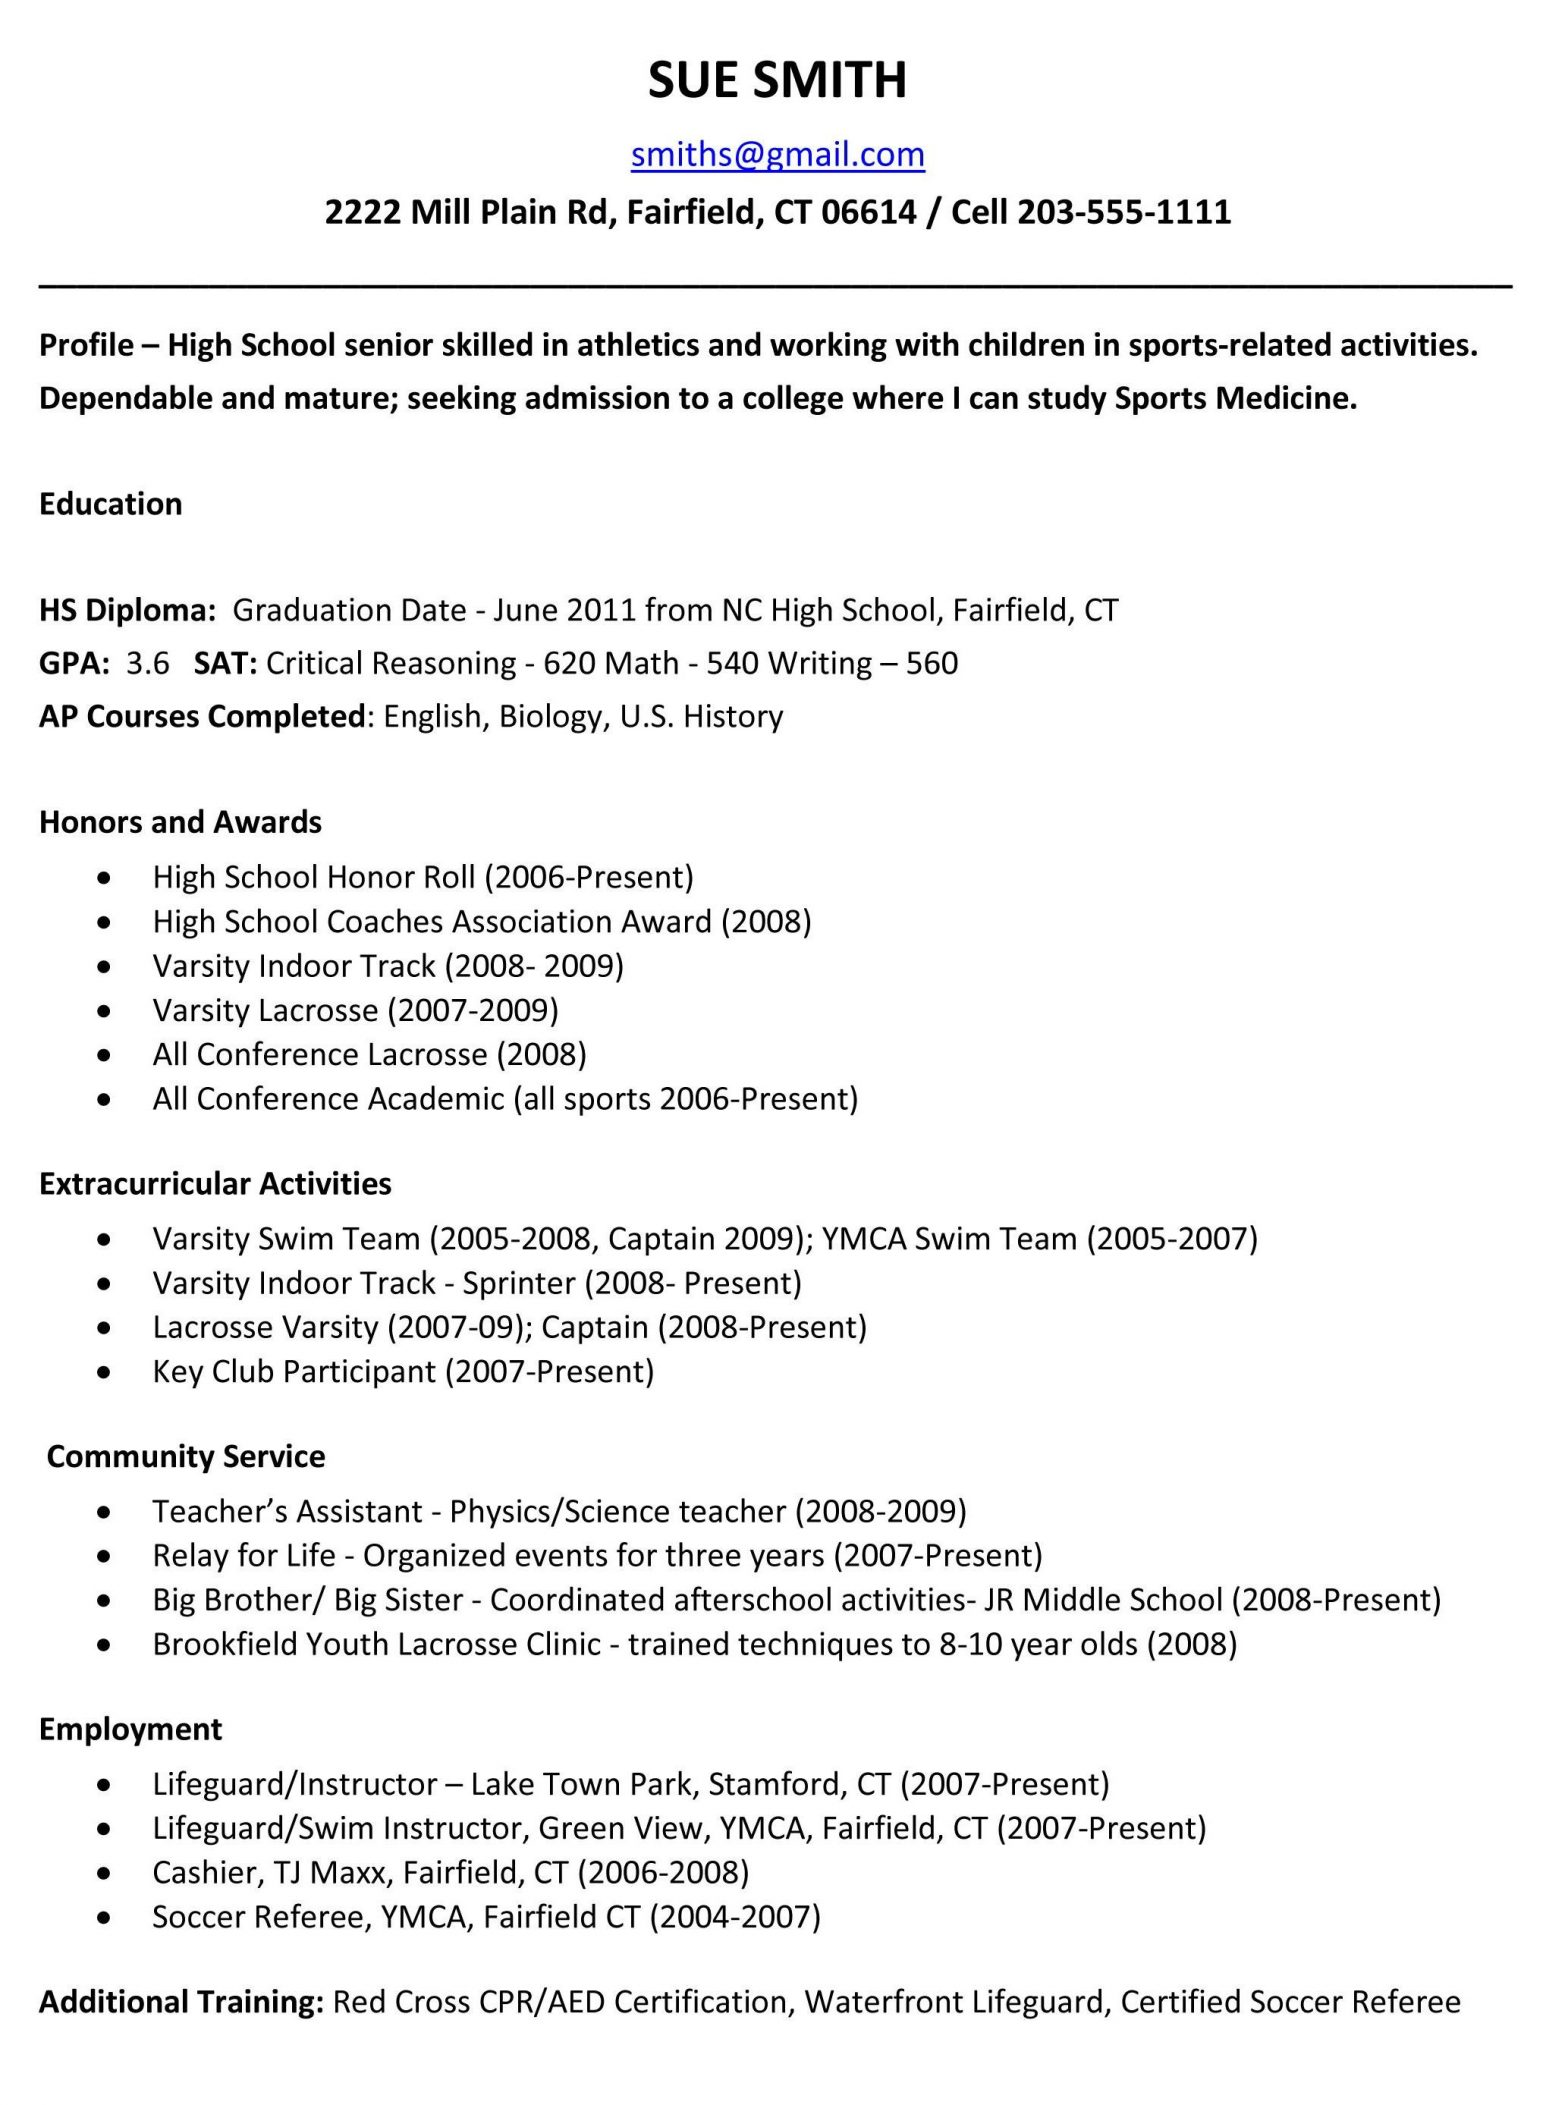 Sample Of A Resume for College Application High School Student Resume Template - Http://www.jobresume.website ...